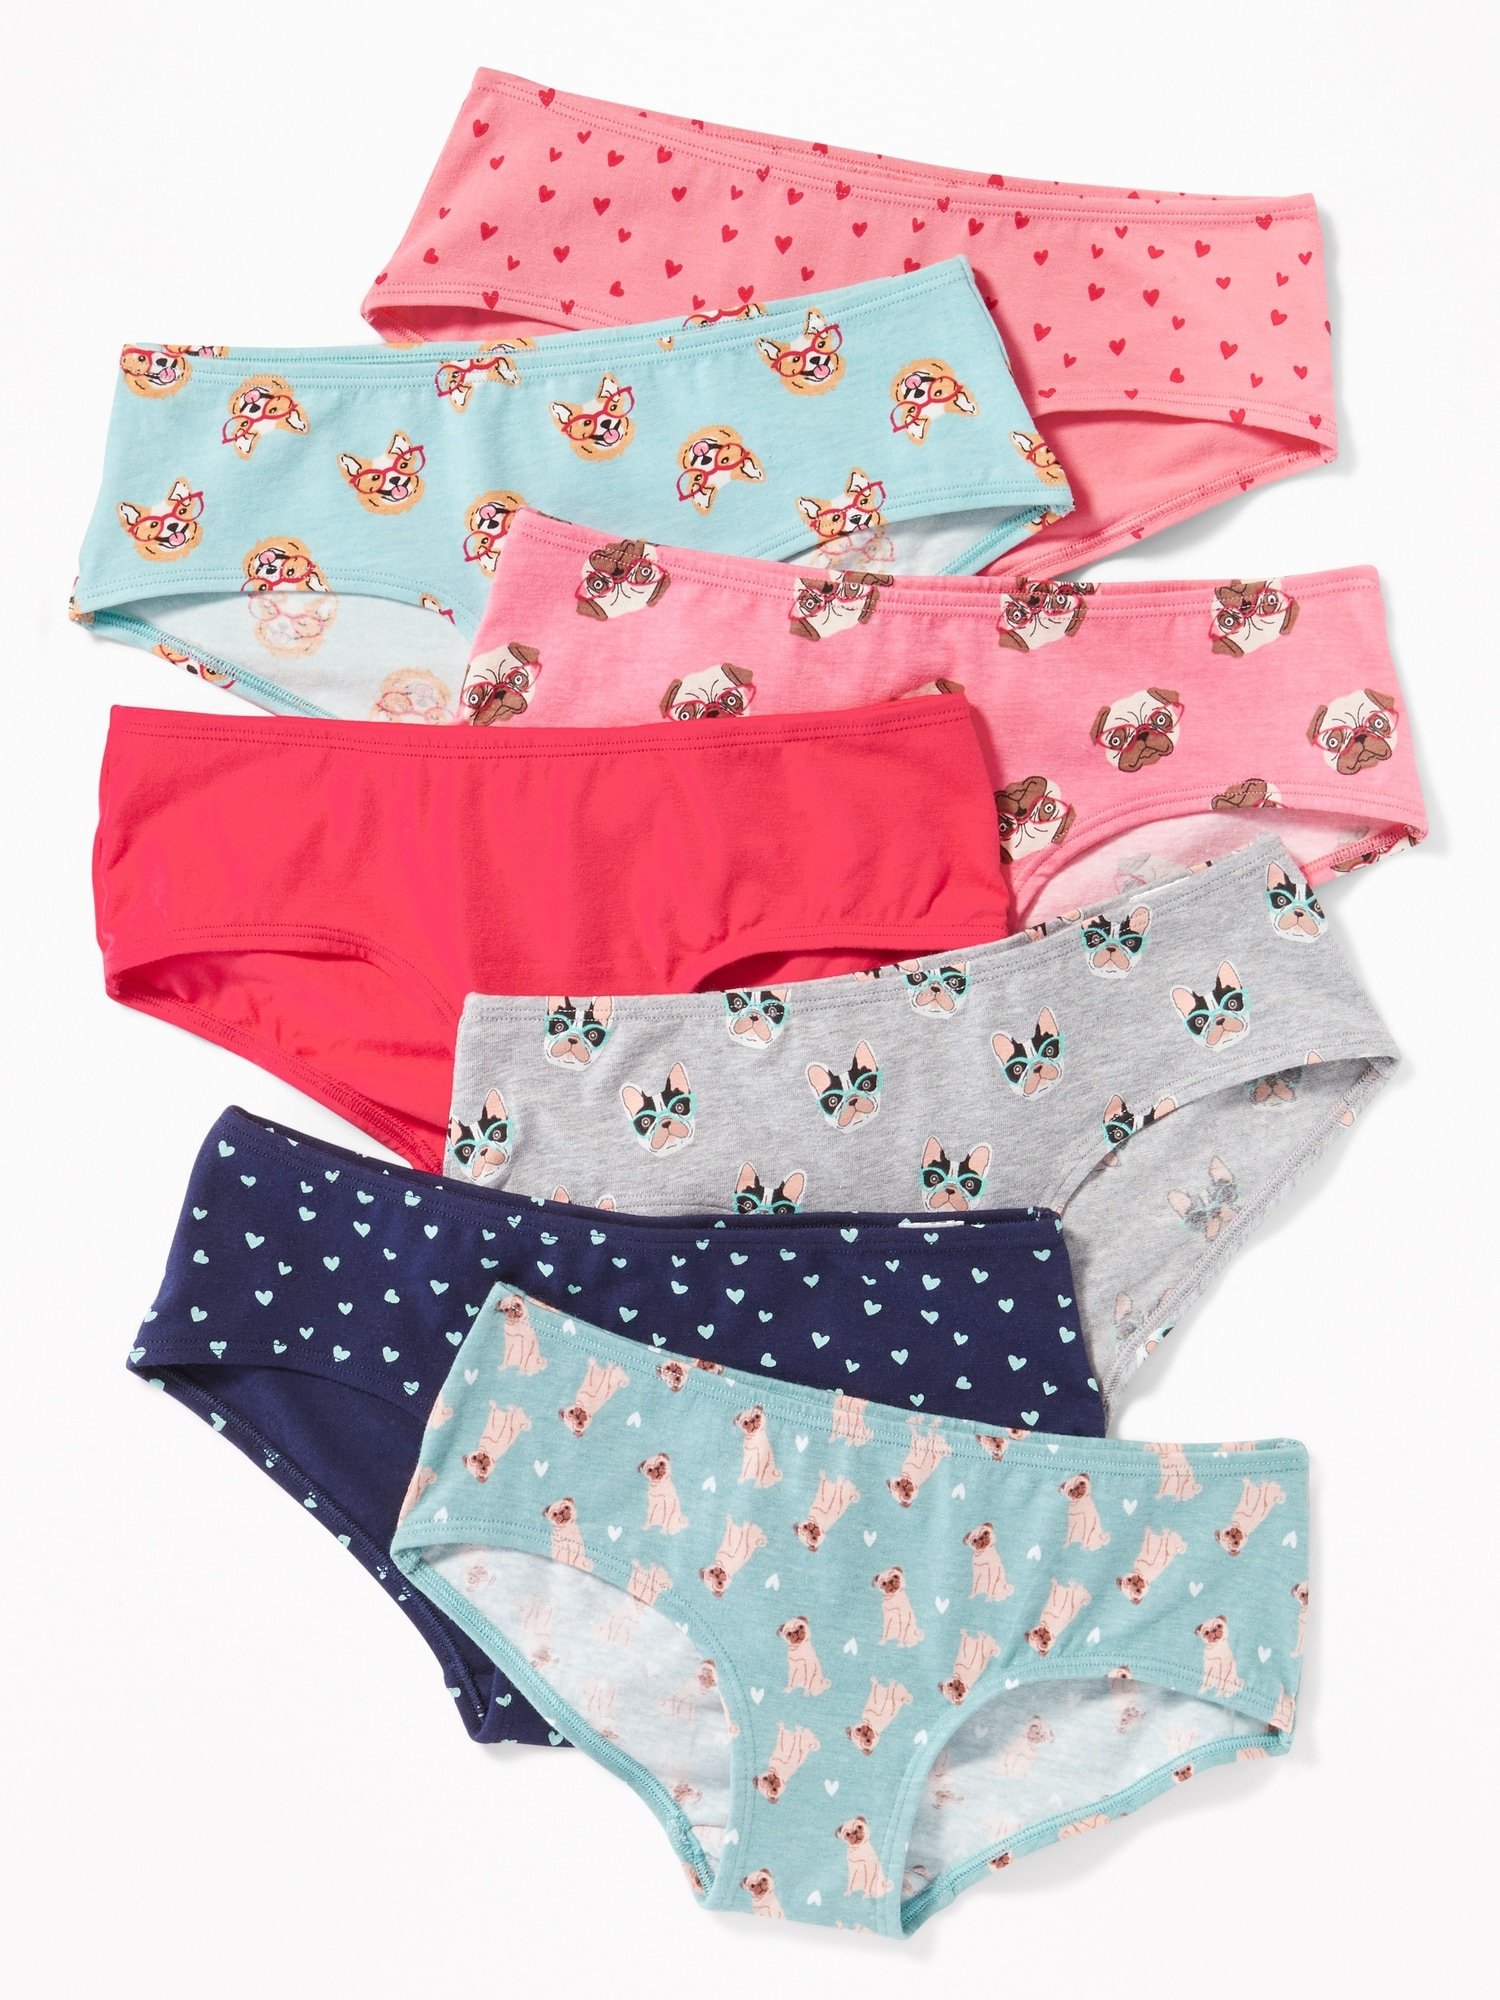 b6363f234e6 Printed Hipster Underwear 7-Pack for Girls